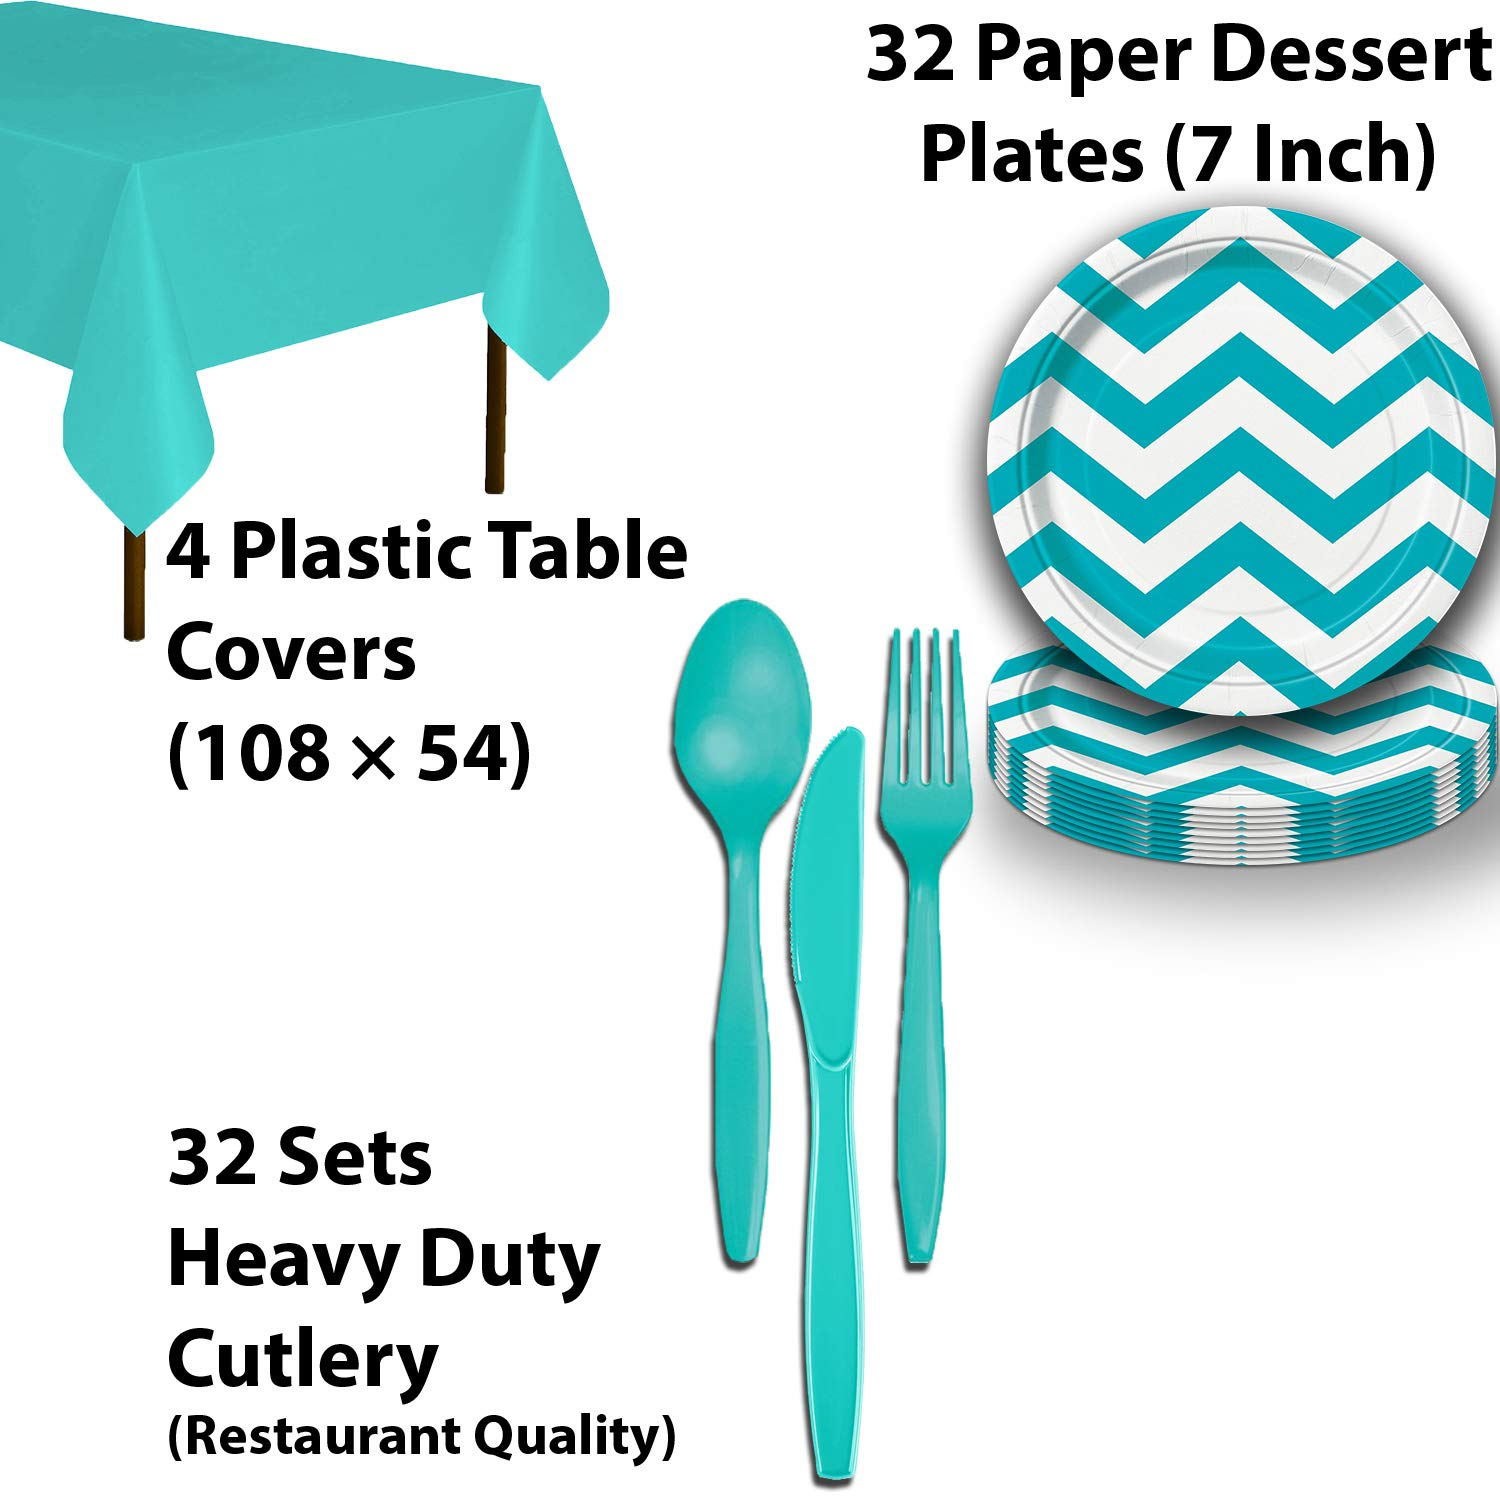 Disposable Tableware, 32 Sets - Silver and Caribbean Teal - Scallop Dinner Plates, Chevron Dessert Plates, Cups, Lunch Napkins, Cutlery, and Tablecloths: Premium Quality Party Supplies Set by HeroFiber (Image #4)